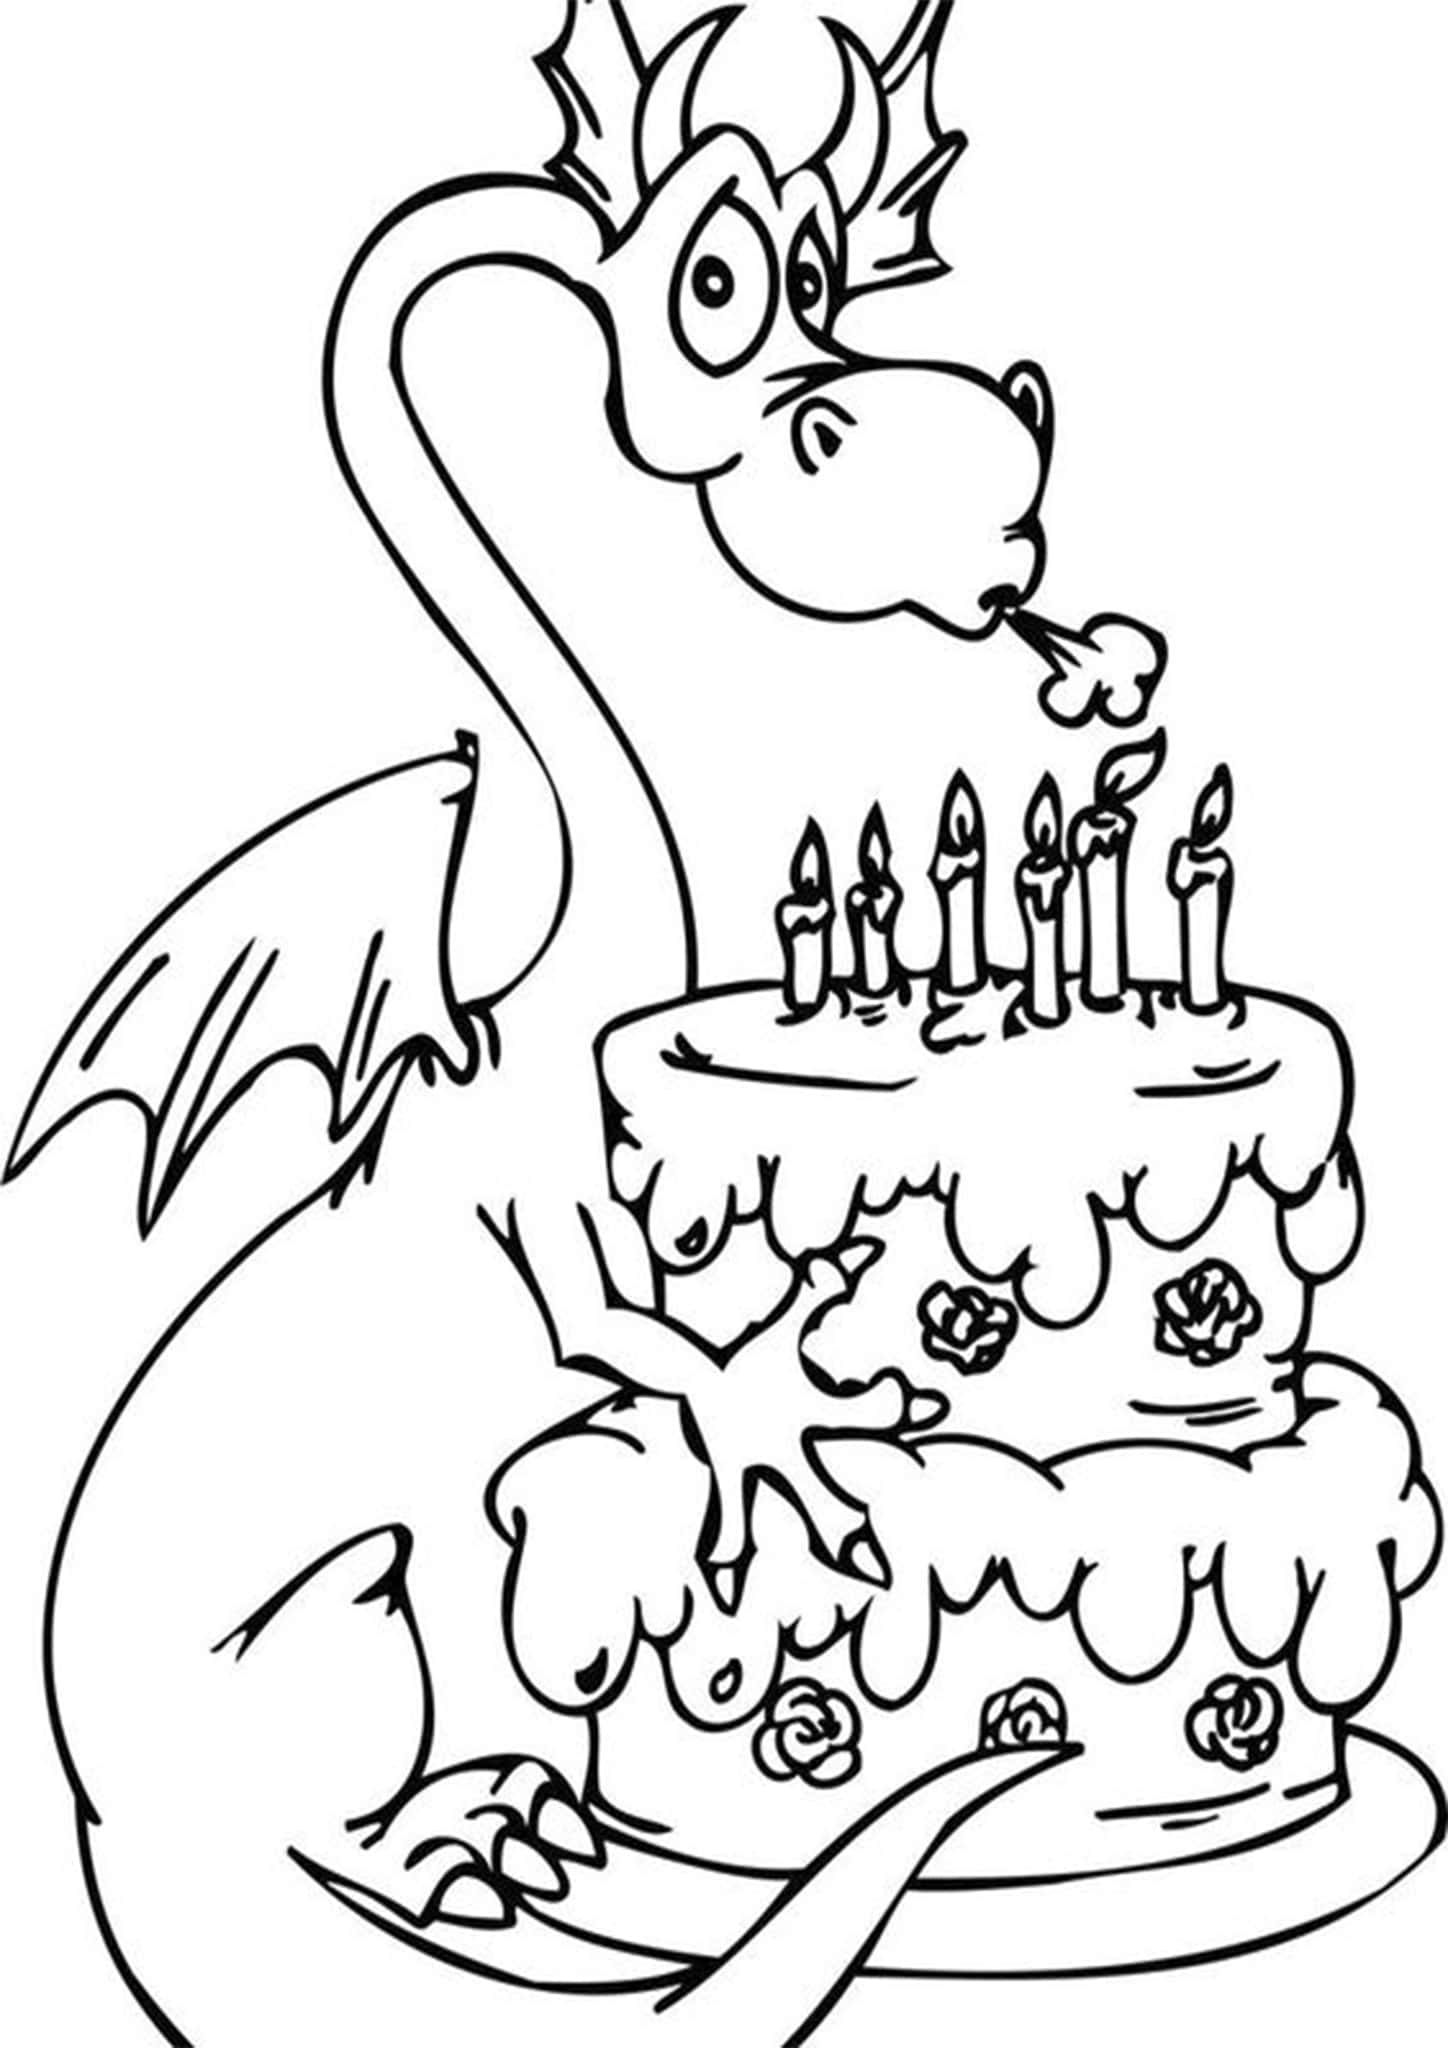 Free Easy To Print Cake Coloring Pages Happy Birthday Coloring Pages Birthday Coloring Pages Cupcake Coloring Pages